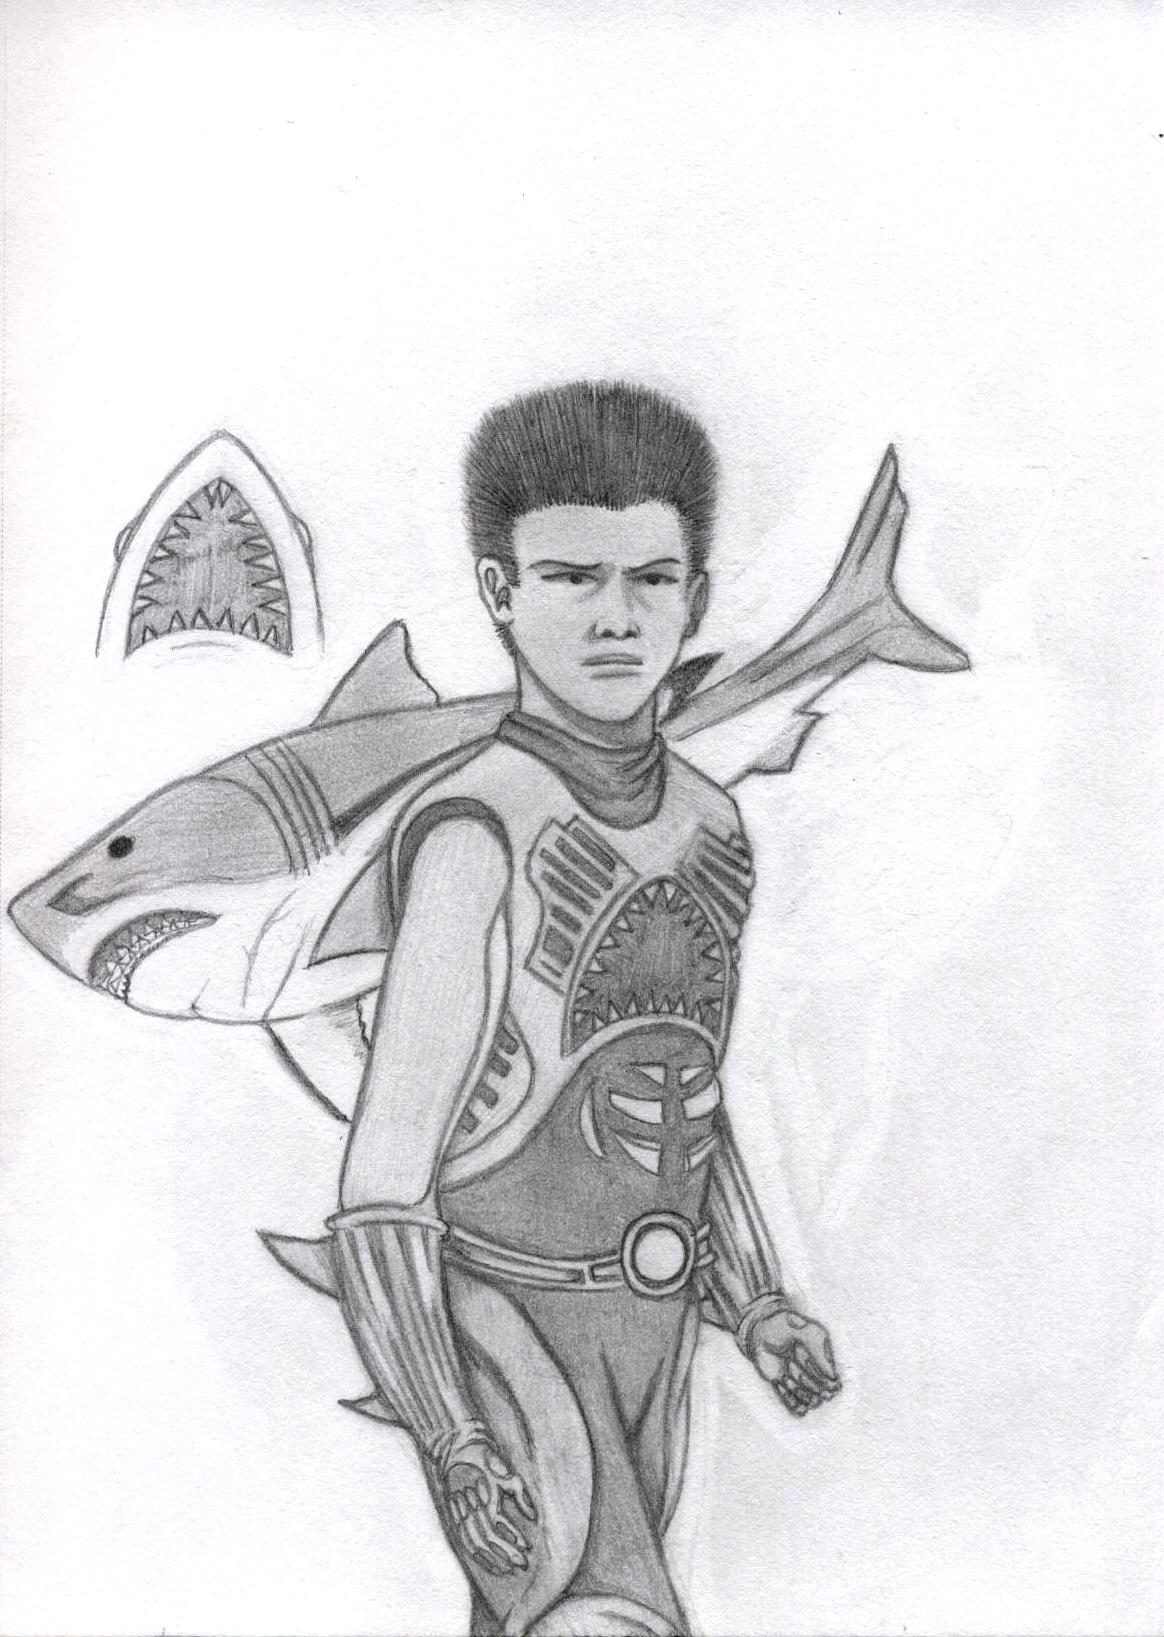 coloring pages shark boy - photo#13